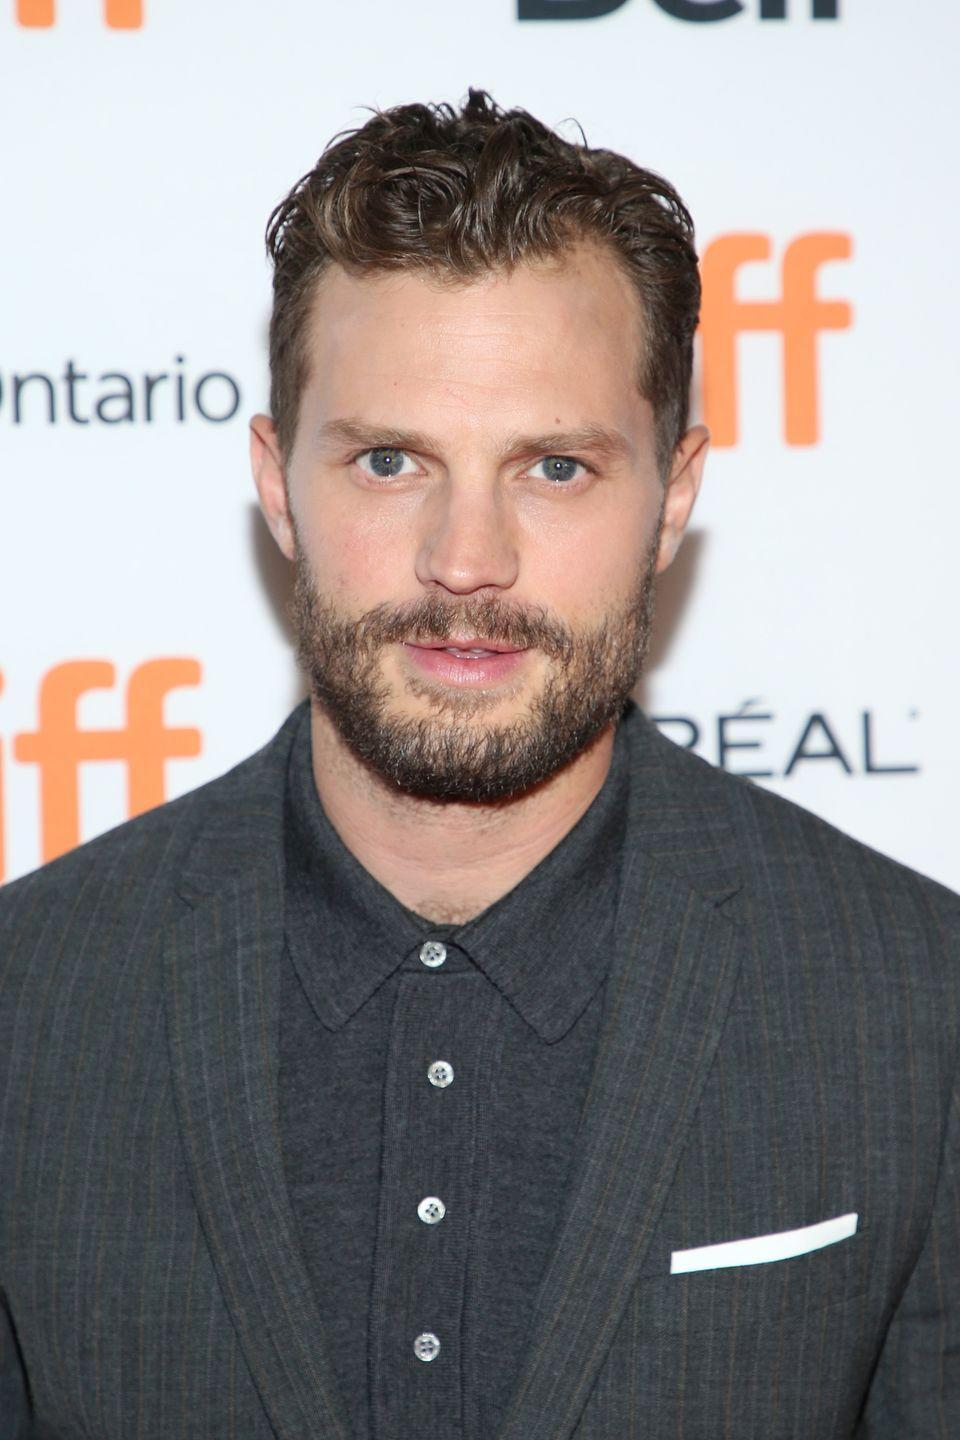 "<p>The controversial trilogy is what made Jamie Dornan a household name, but the actor has spoken about how he found the method of getting inside his character's head difficult. ""I don't think I'll ever play a ­character who's less like me,"" he said on Jay Rayner's <a href=""https://audioboom.com/posts/7246512-jamie-dornan"" rel=""nofollow noopener"" target=""_blank"" data-ylk=""slk:podcast"" class=""link rapid-noclick-resp"">podcast </a><em><a href=""https://podcasts.apple.com/gb/podcast/jamie-dornan/id1455111316?i=1000436855813"" rel=""nofollow noopener"" target=""_blank"" data-ylk=""slk:Out to Lunch"" class=""link rapid-noclick-resp"">Out to Lunch</a>. </em>If you wanted his wife's opinion, she wouldn't have one. She <a href=""https://www.thesun.co.uk/tvandshowbiz/5472435/jamie-dornan-says-his-wife-hasnt-watched-him-in-fifty-shades-films-and-its-got-nothing-to-do-with-seeing-him-having-sex-with-someone-else/"" rel=""nofollow noopener"" target=""_blank"" data-ylk=""slk:still hasn't seen"" class=""link rapid-noclick-resp"">still hasn't seen</a> the films. </p>"